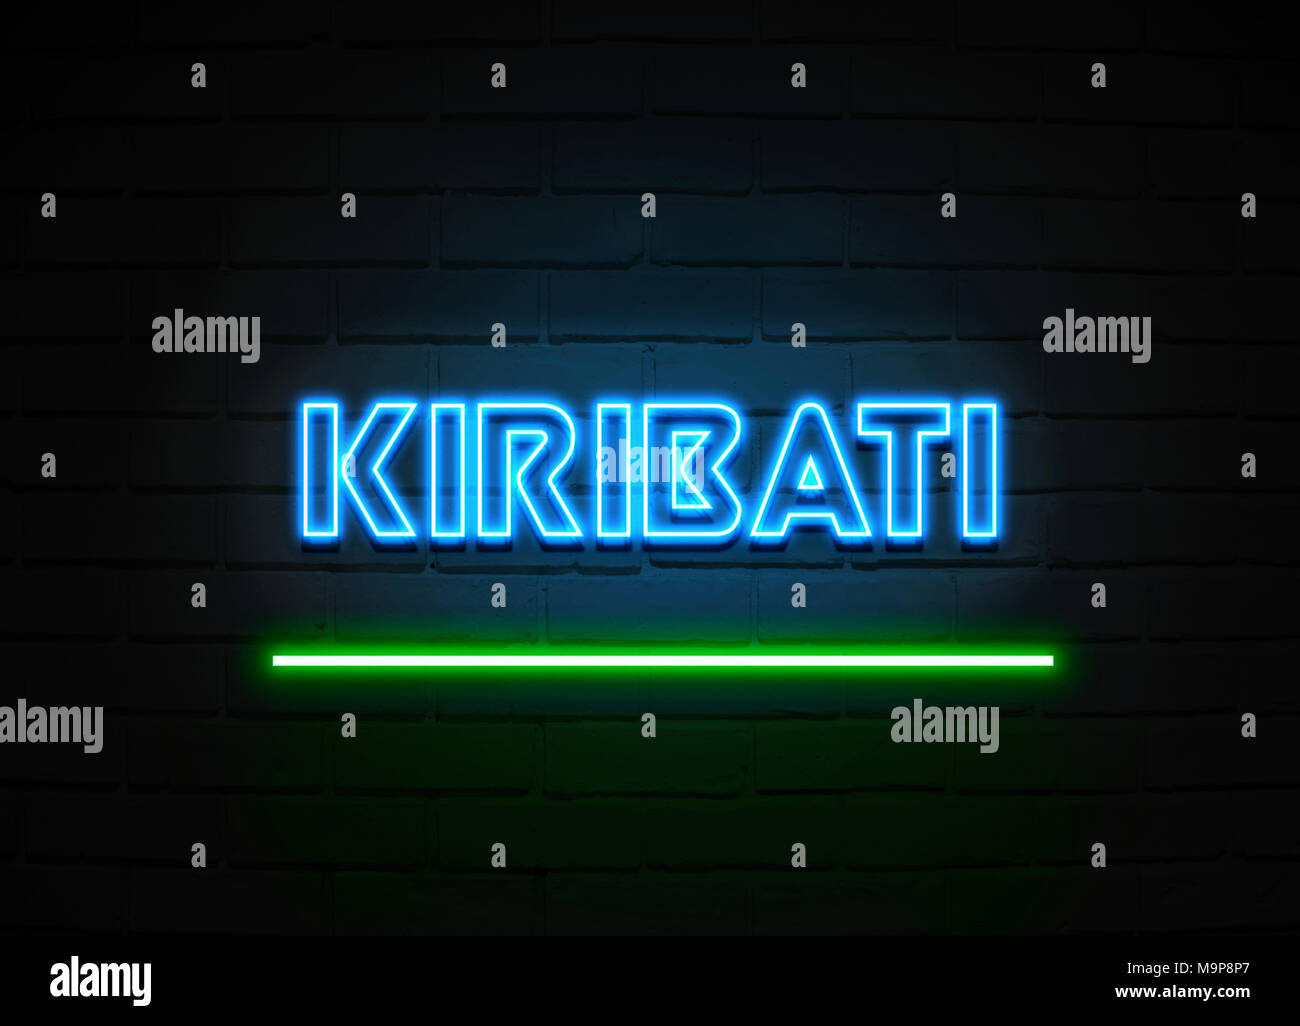 Kiribati neon sign - Glowing Neon Sign on brickwall wall - 3D rendered royalty free stock illustration. - Stock Image